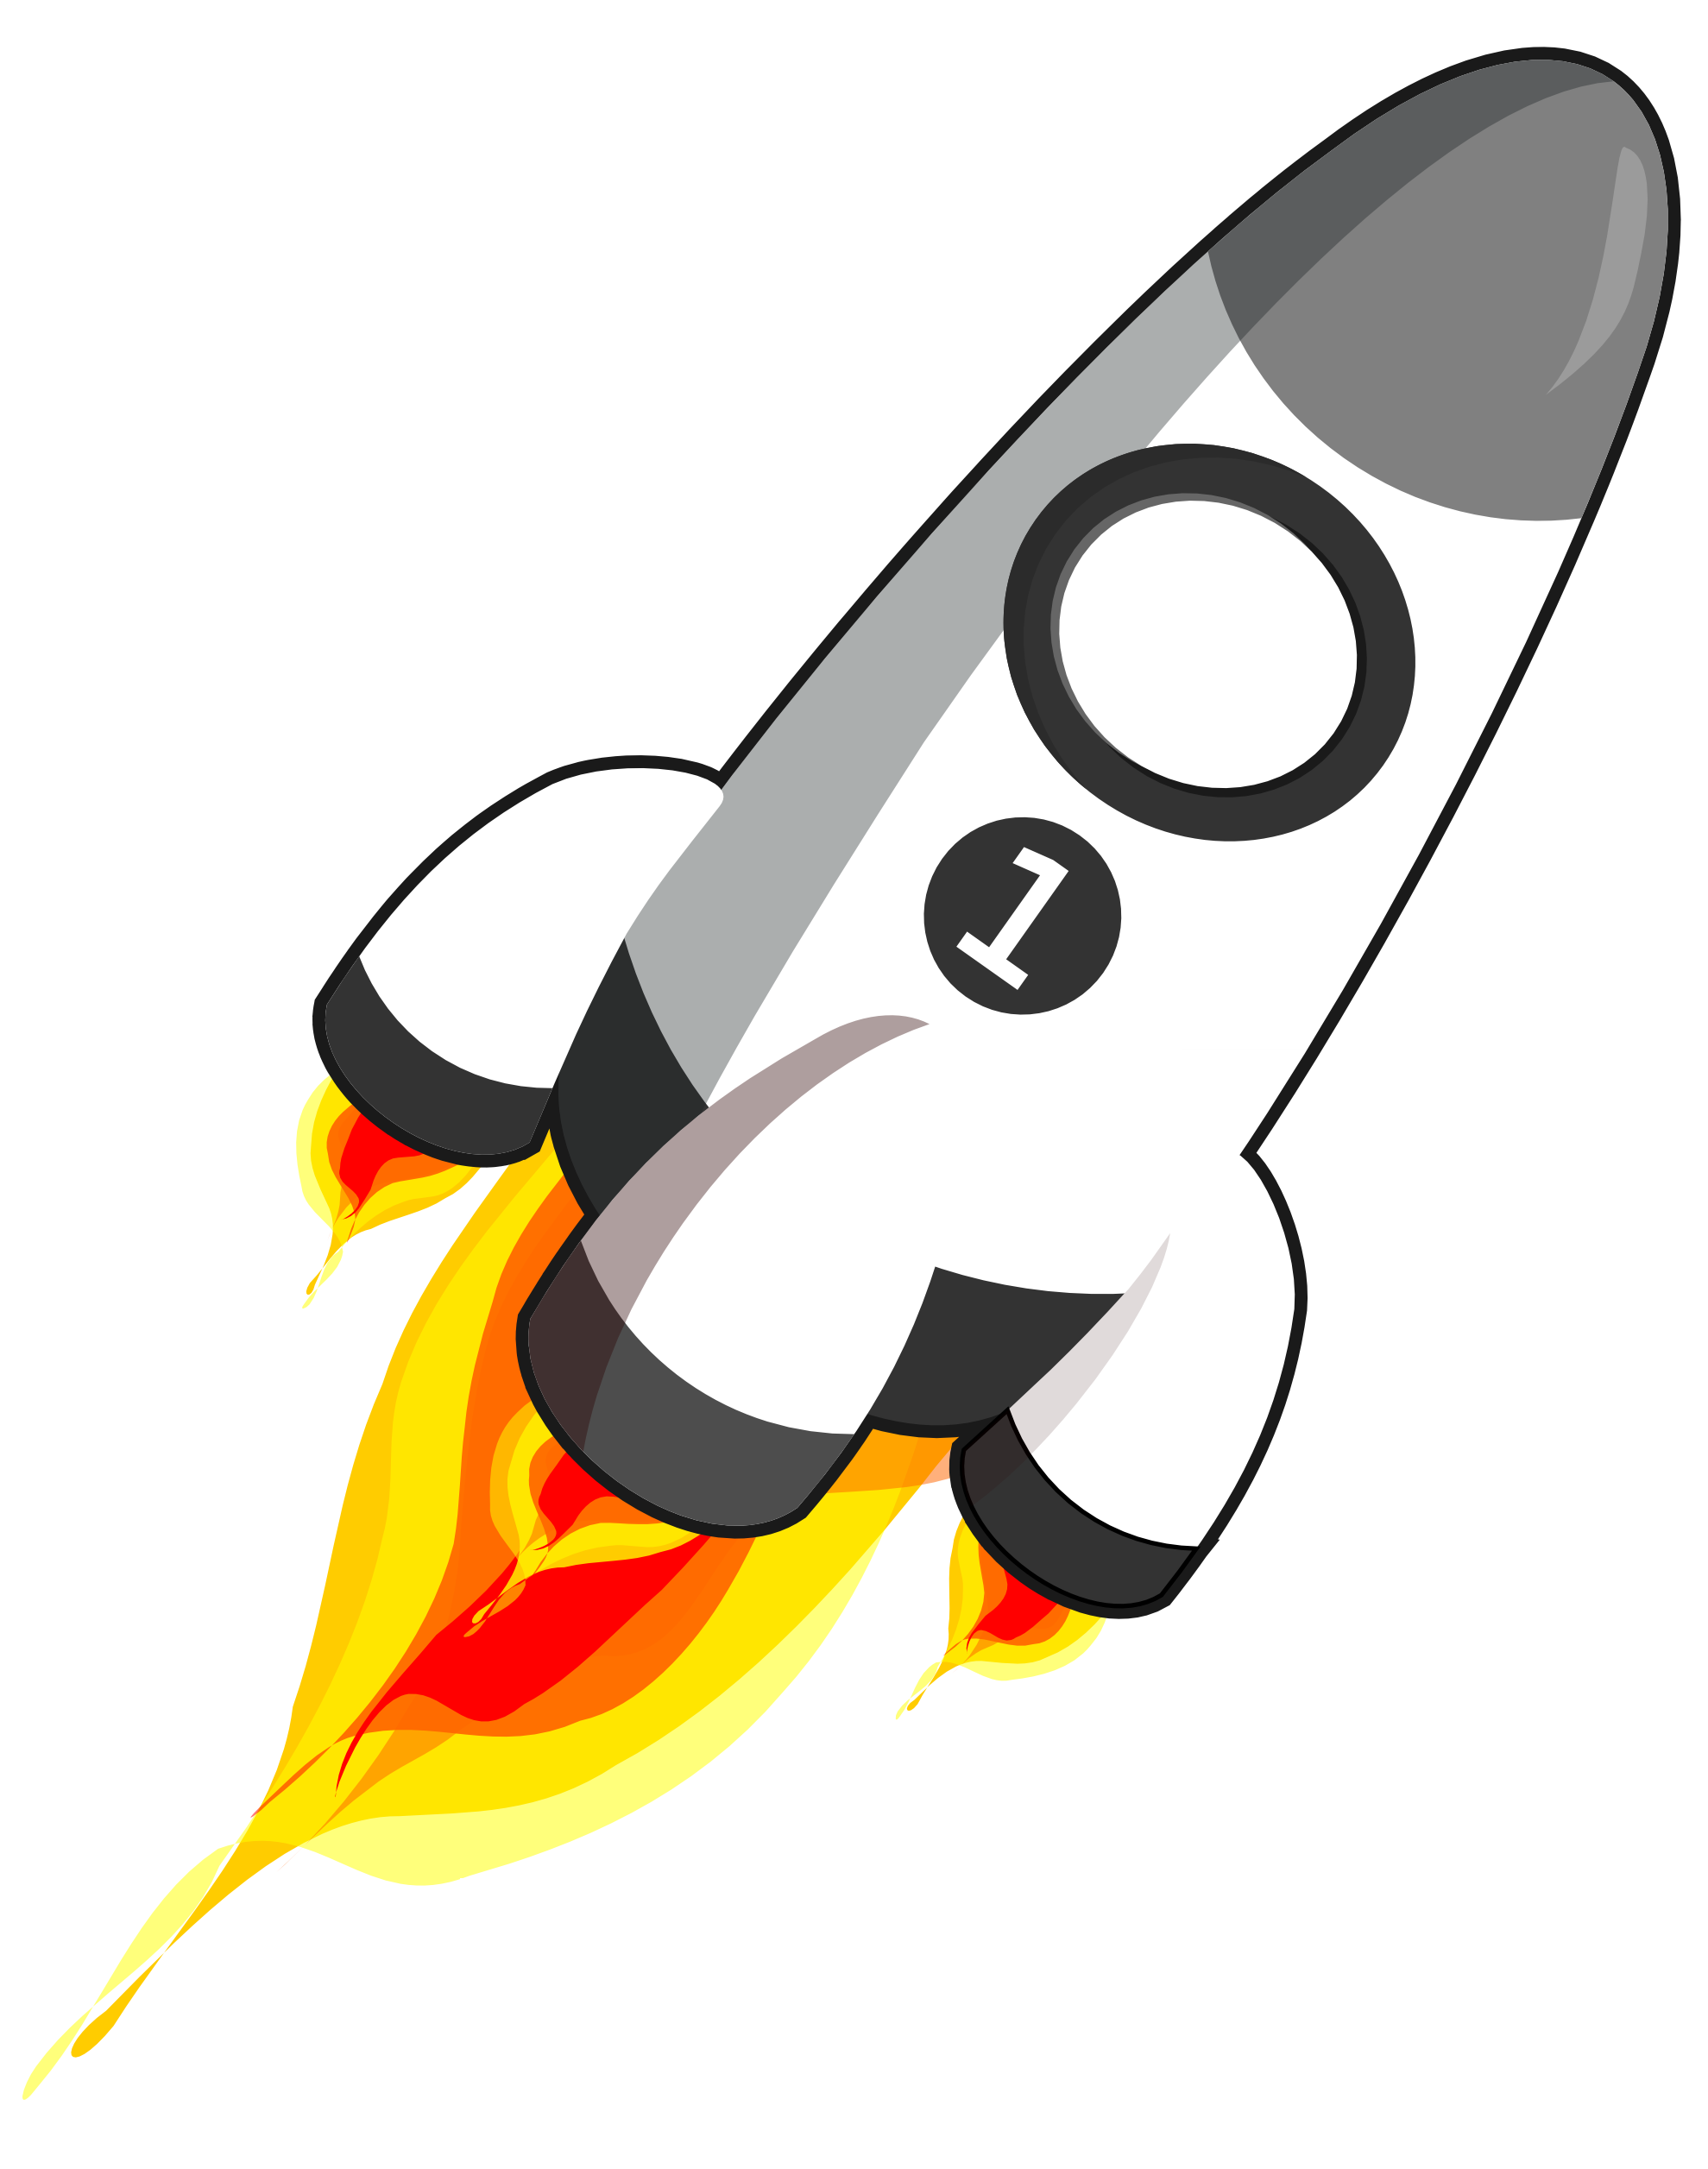 royalty free stock Vector rockets rocket clipart. Free picture of download